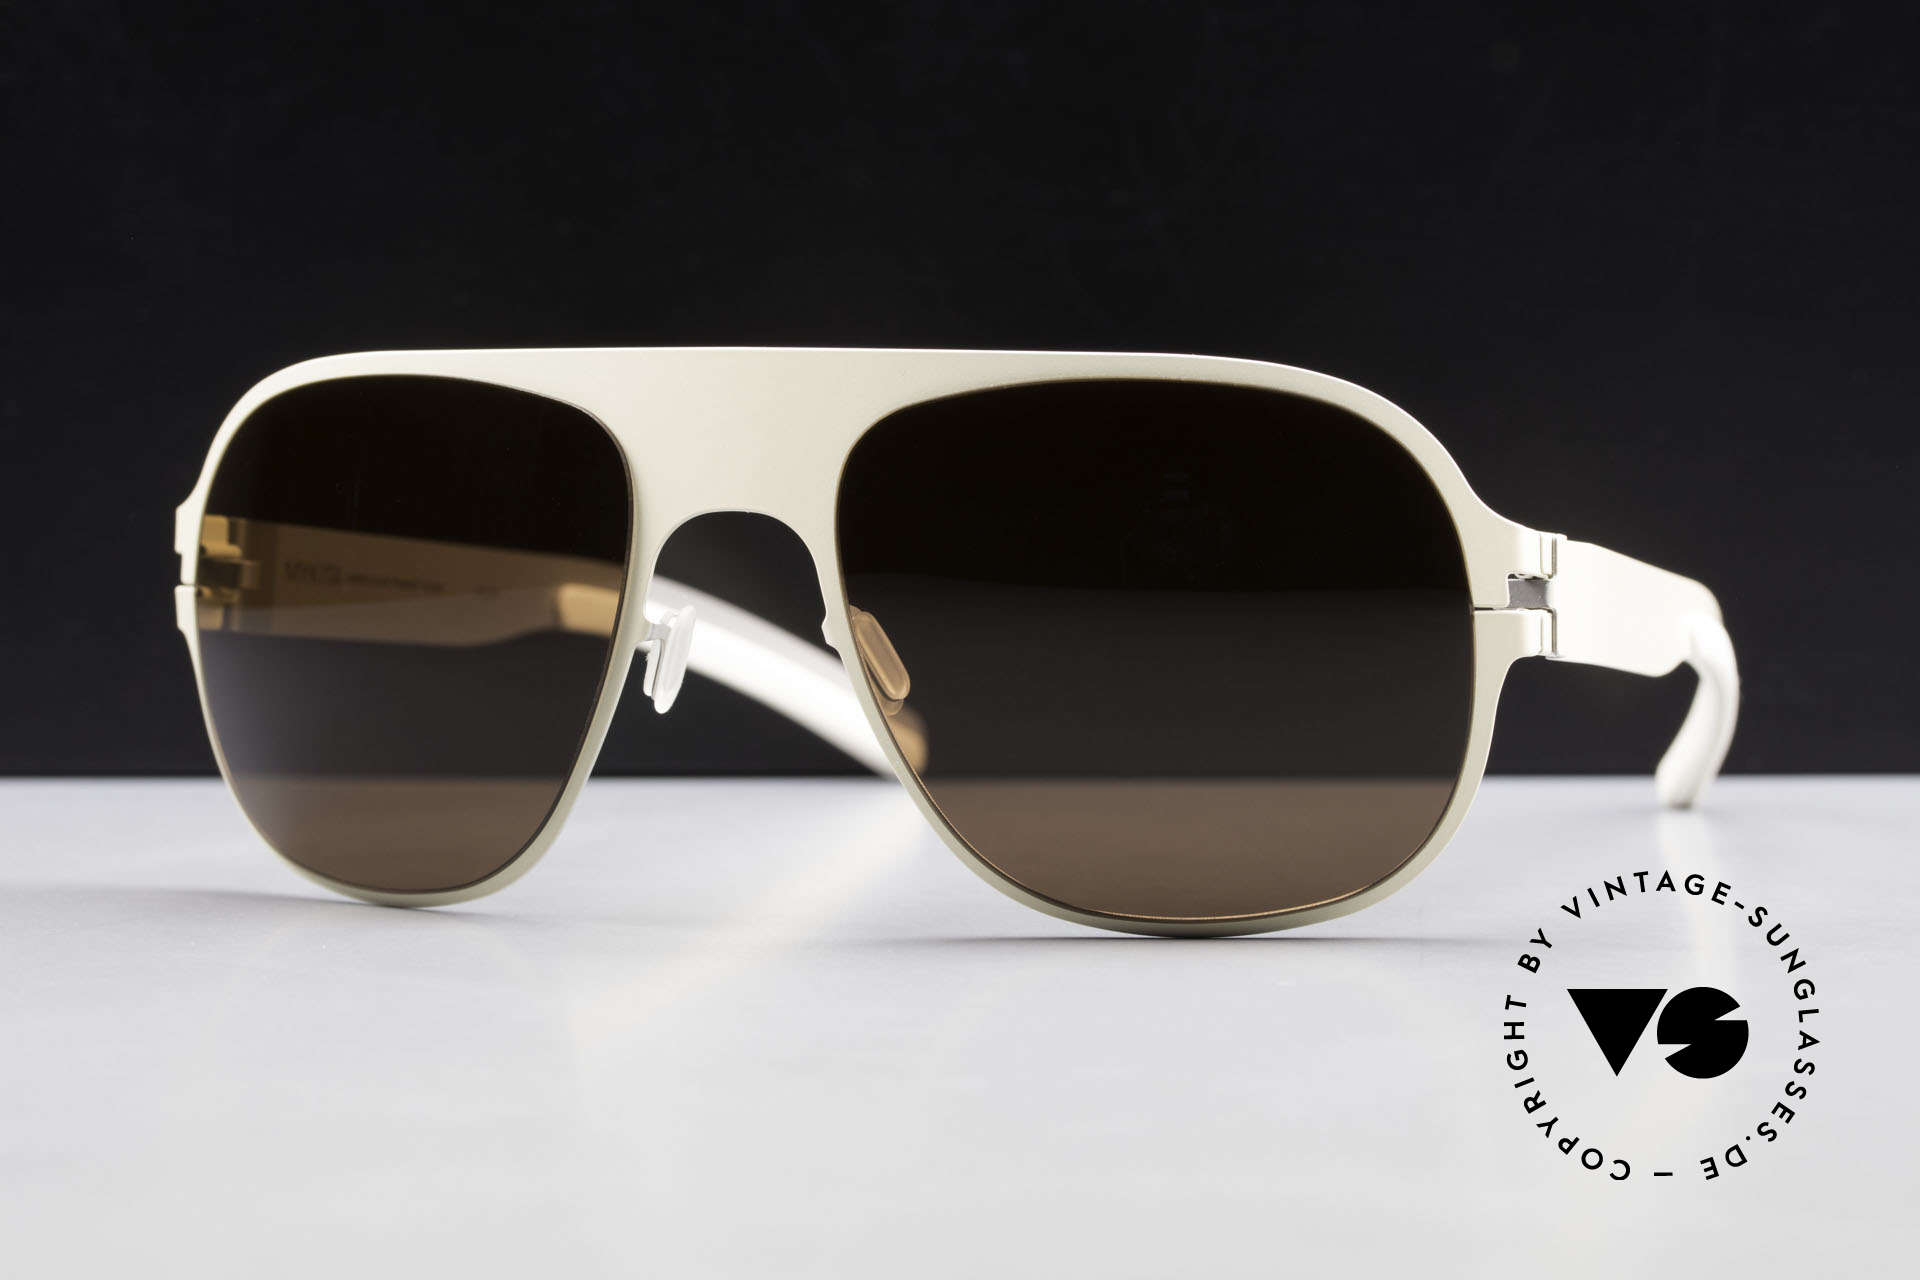 Mykita Rodney Limited Designer Sunglasses, Limited Flash Rodney Ivory SS10M, brown solid, 57/19, Made for Men